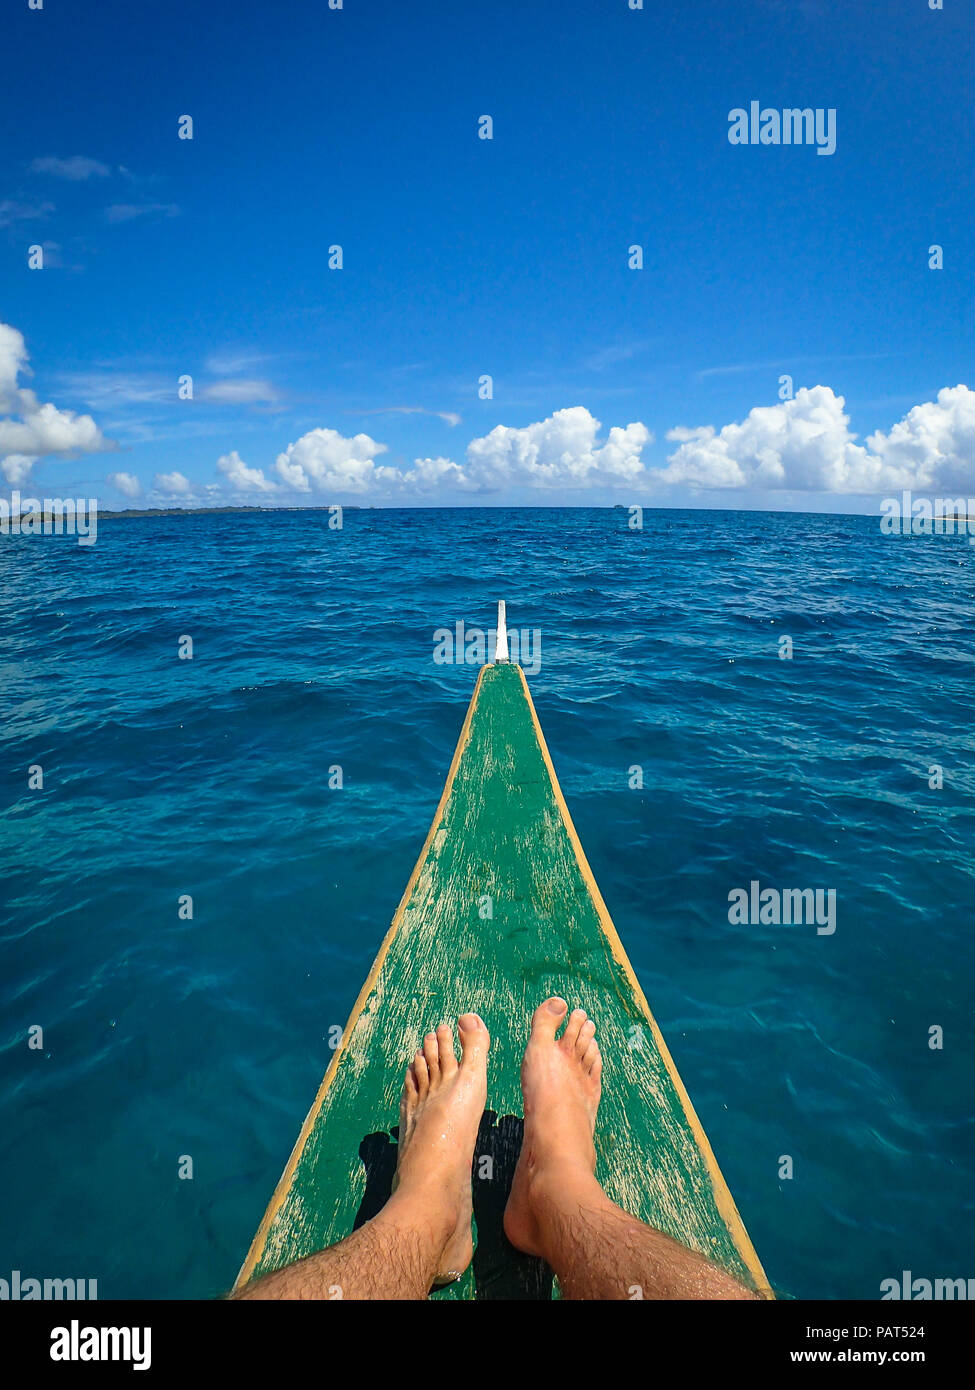 Tourist's bare feet on bow of wooden boat on the open sea, during island hopping tour - El Nido, Palawan - Philippines - Stock Image